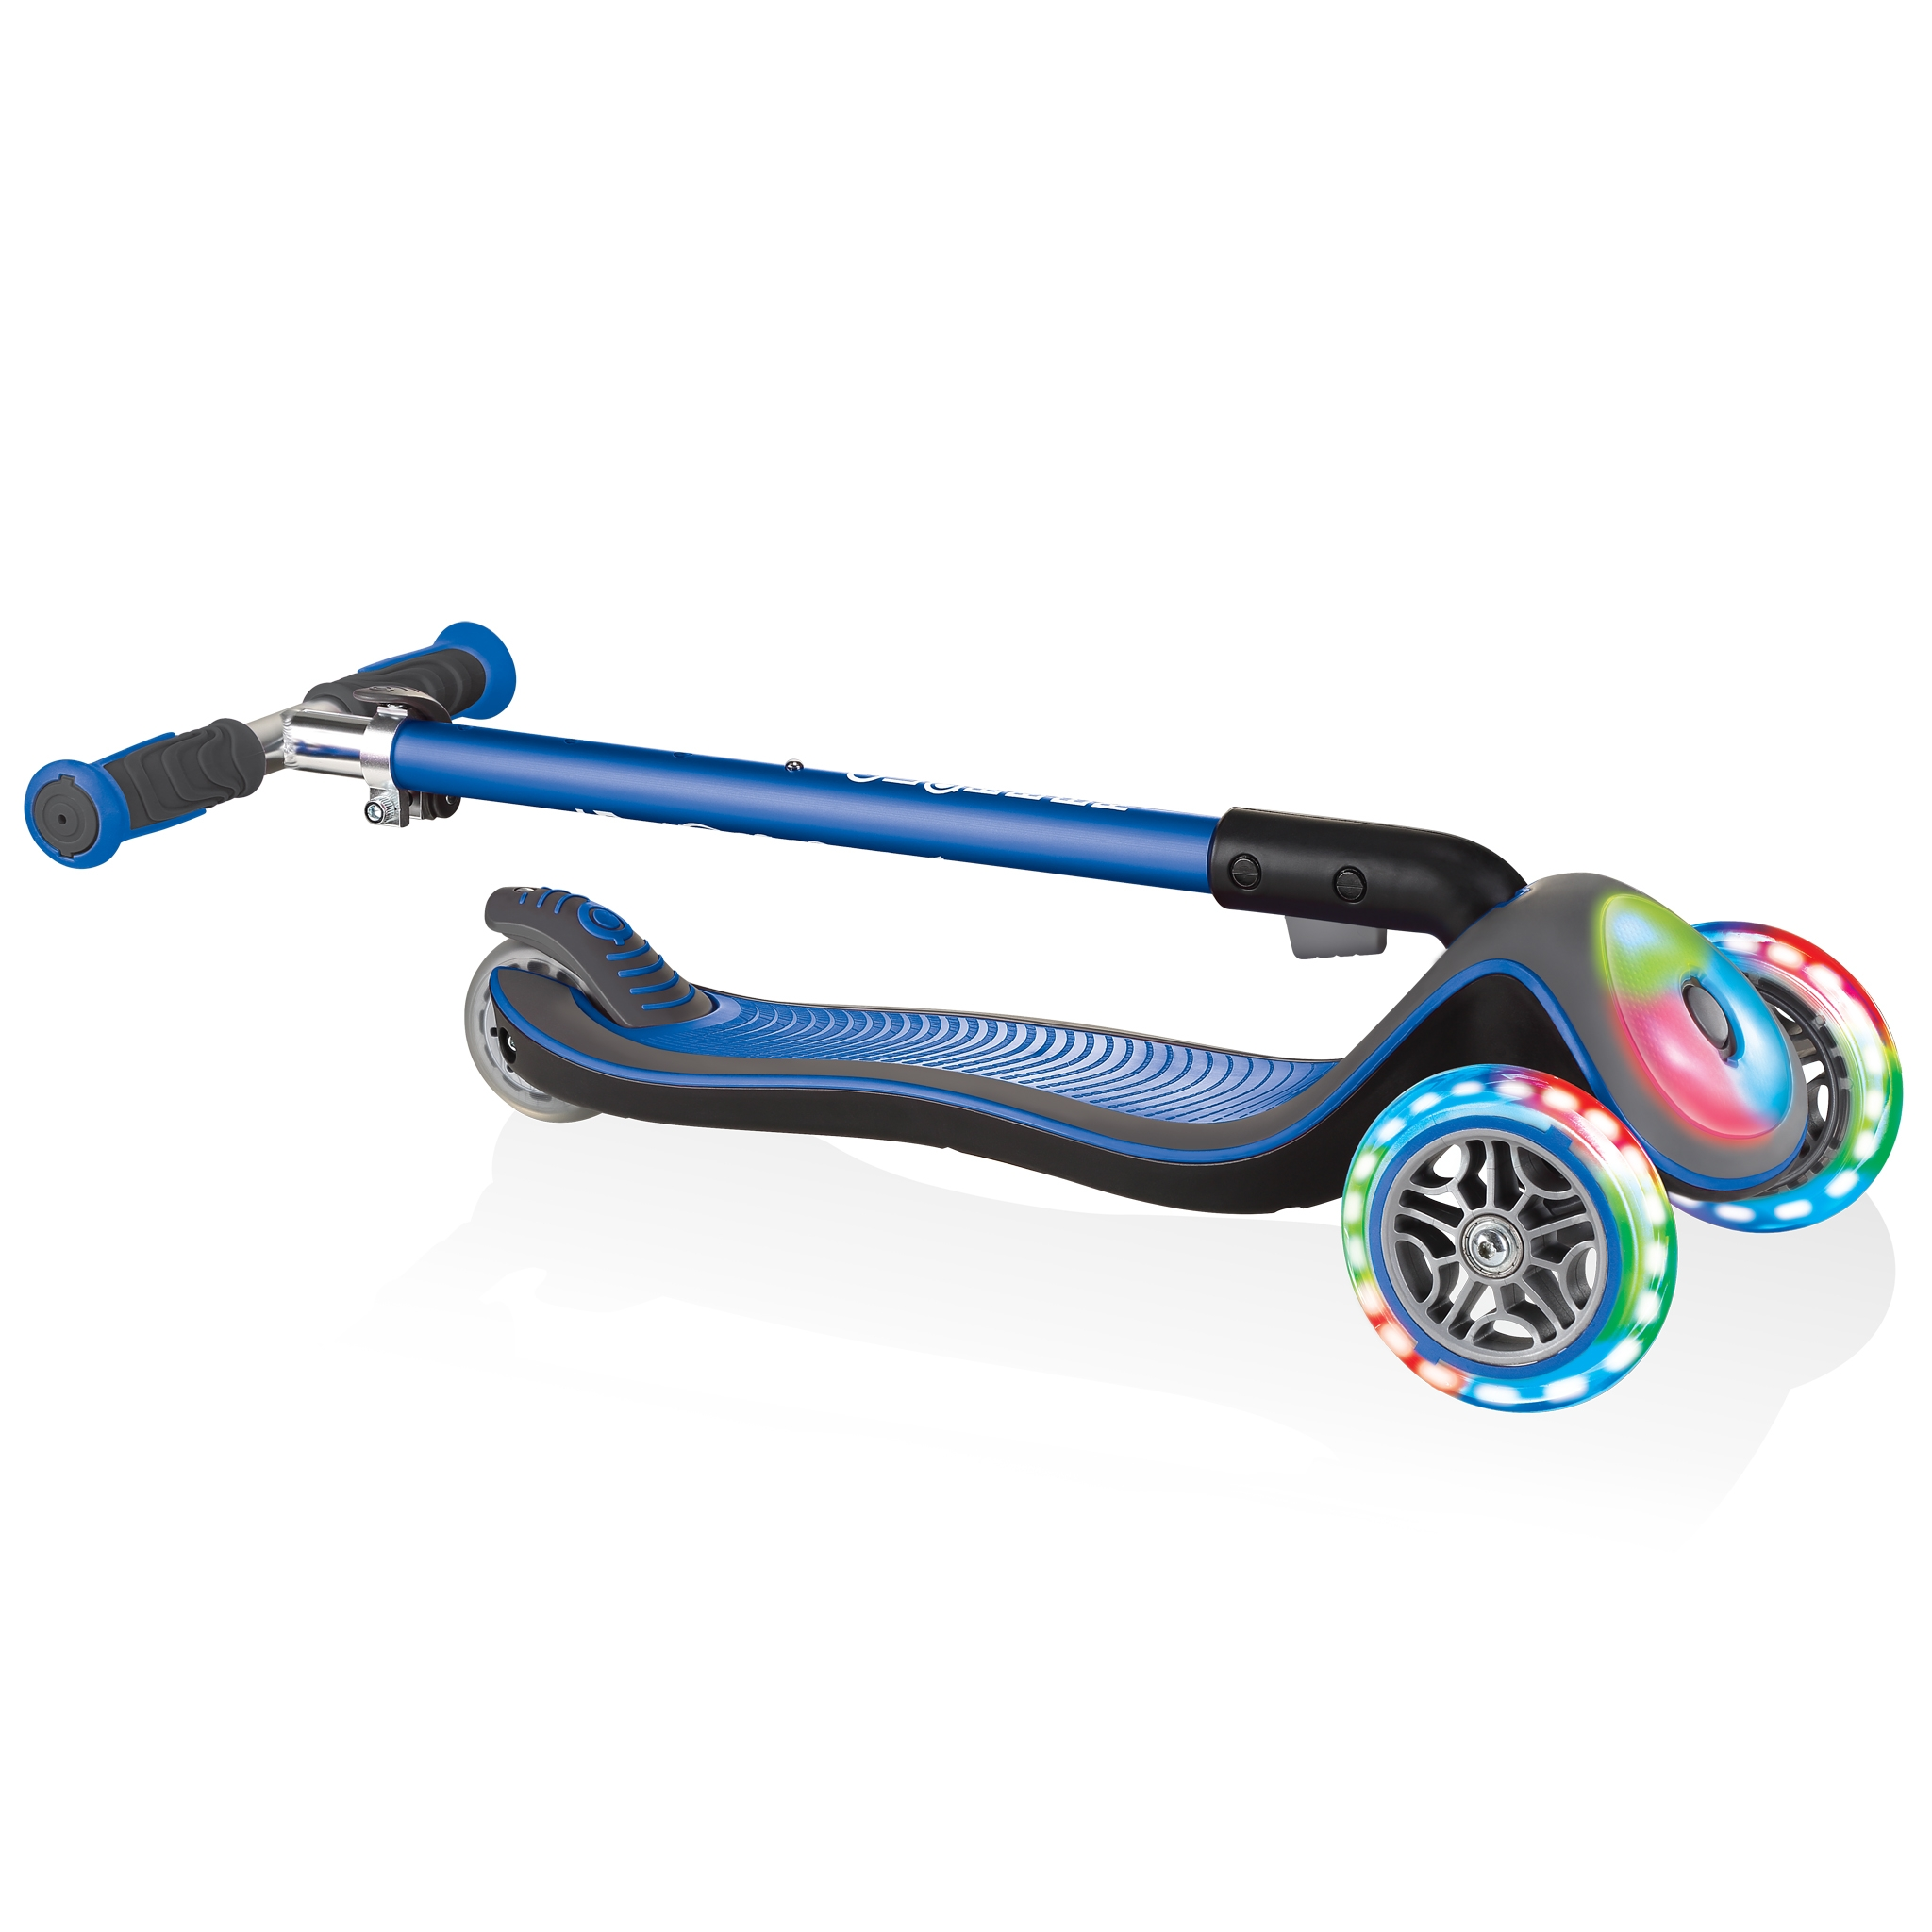 Globber-ELITE-DELUXE-FLASH-LIGHTS-3-wheel-foldable-scooter-for-kids-with-light-up-deck-module-and-wheels-navy-blue